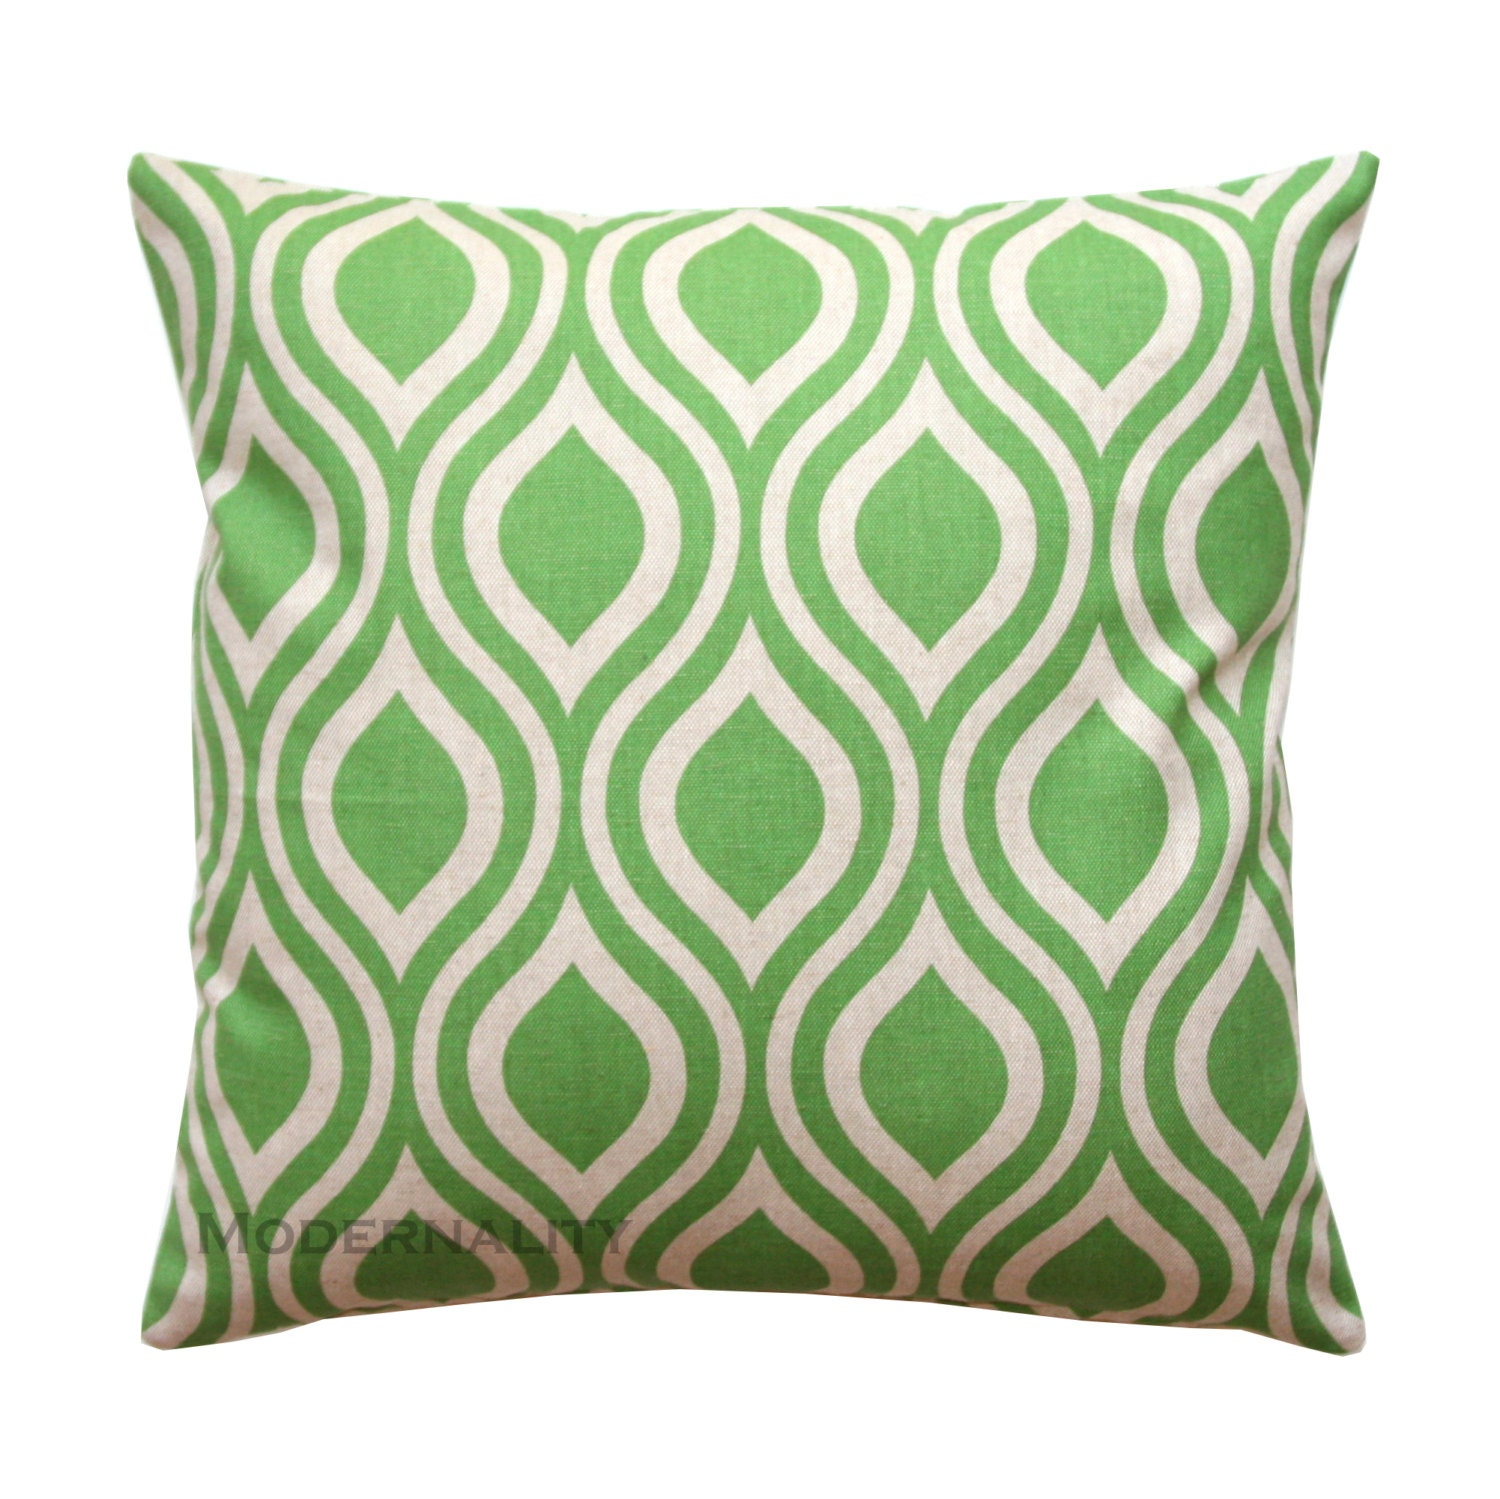 Throw Pillows In Clearance : CLEARANCE Decorative Pillow Cover Premier by ModernalityHomeDecor